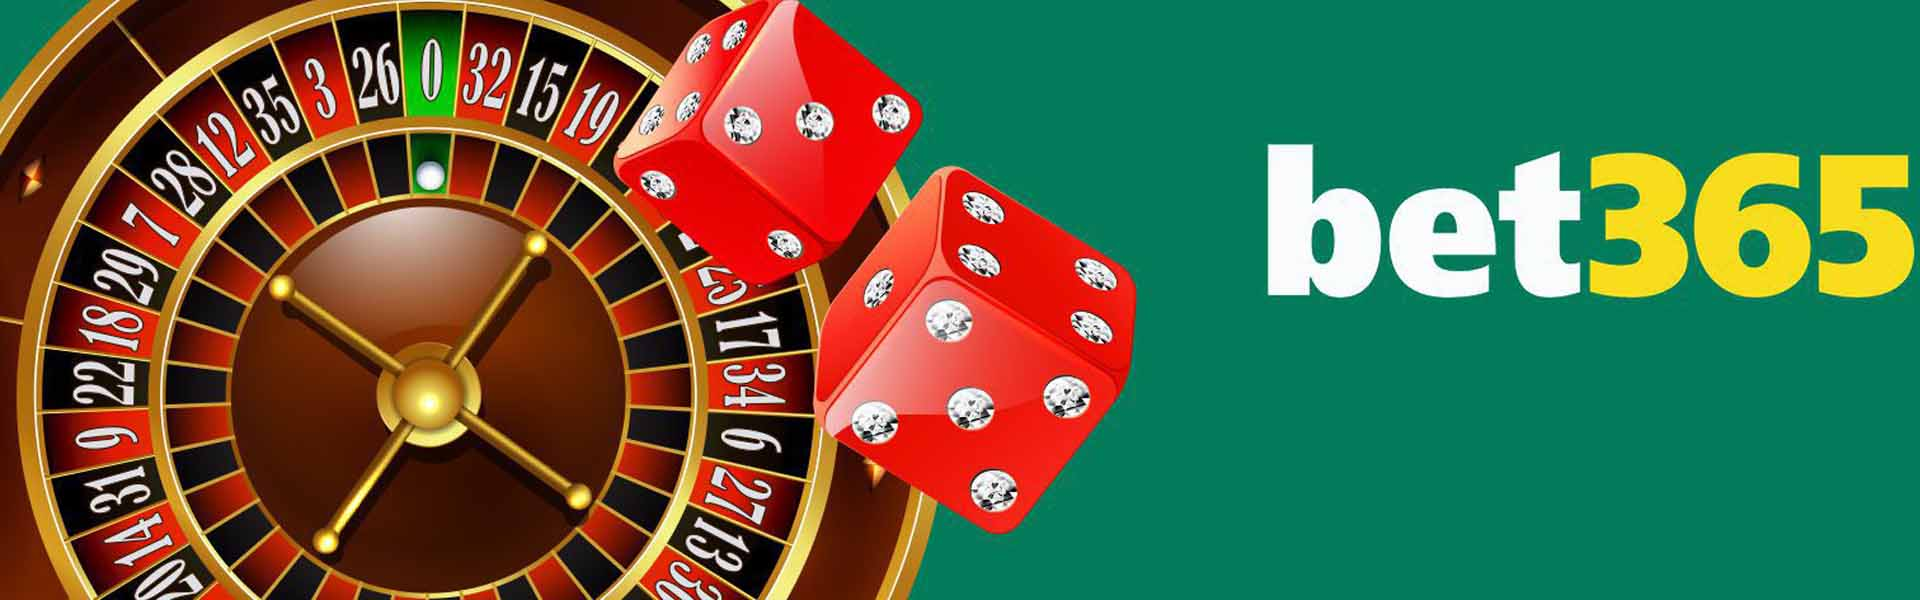 Bet365 Casino Review 2019